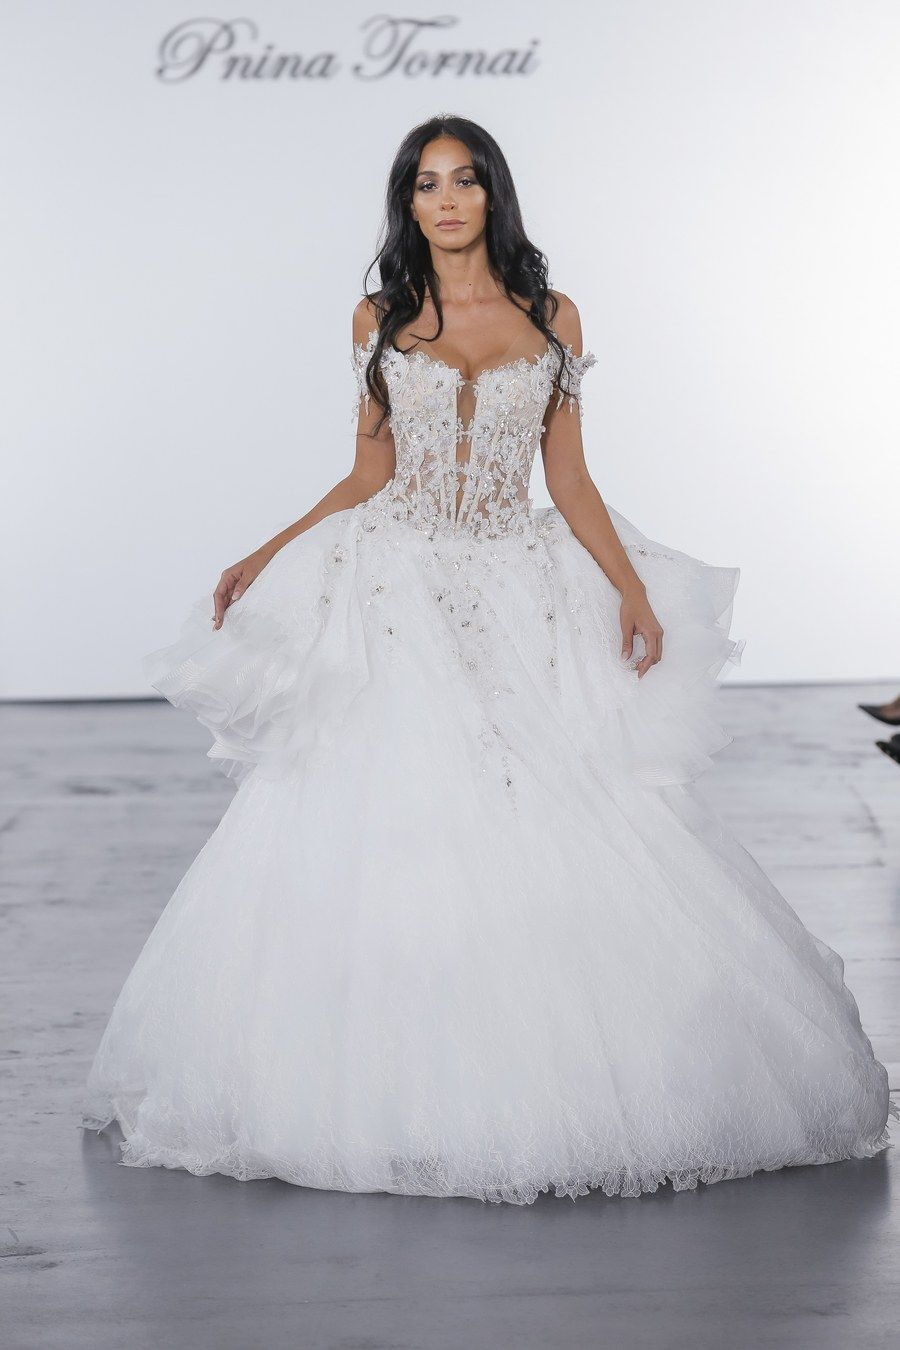 Wedding dresses kleinfeld  Wedding dress by Pnina Tornai for Kleinfeld  wattpad  Pinterest